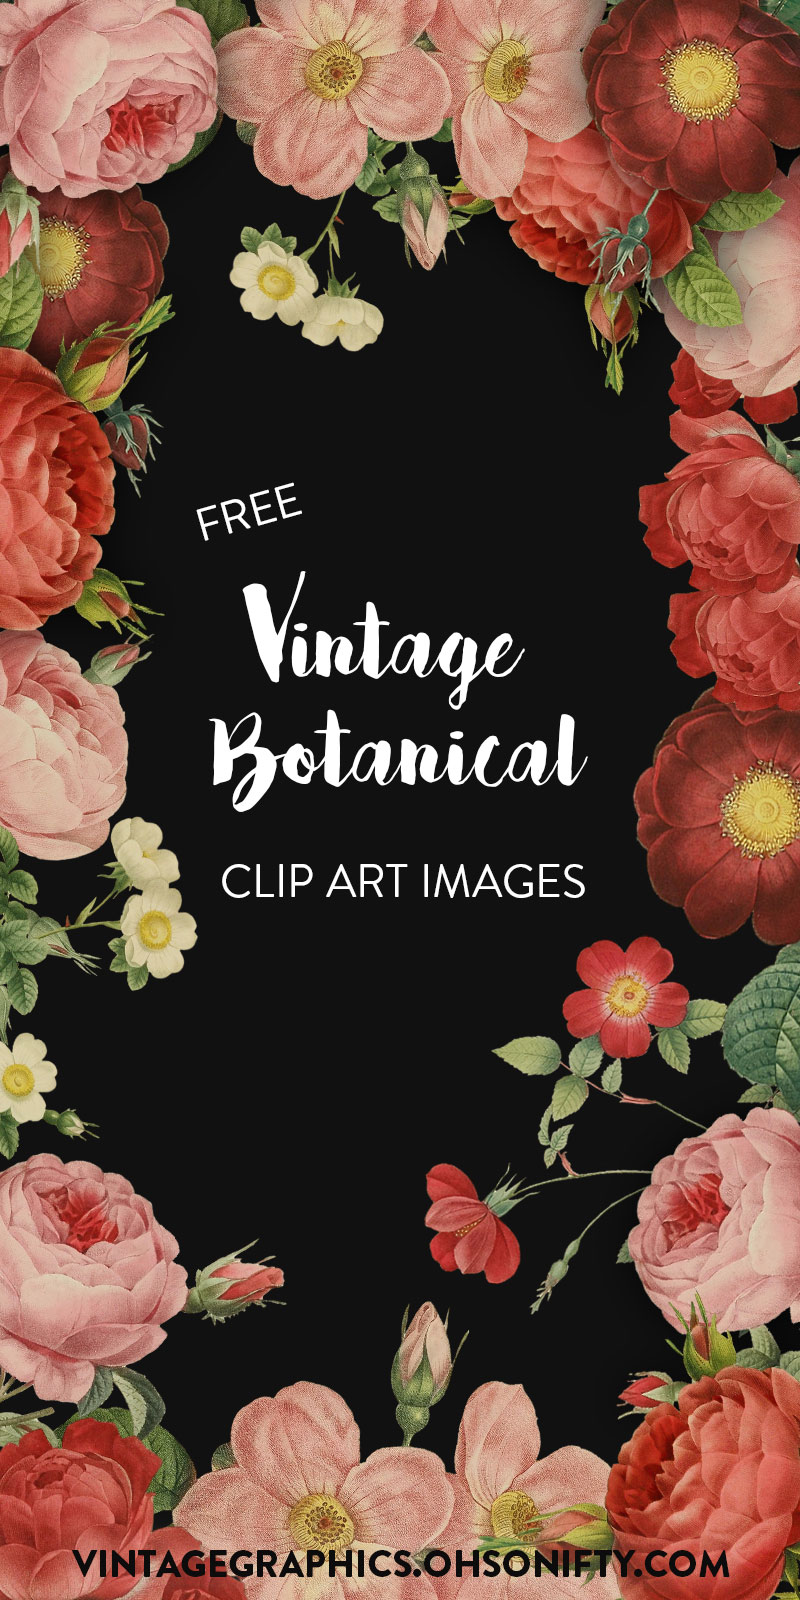 Free Clipart Images | Vintage Botanical Roses and Flowers